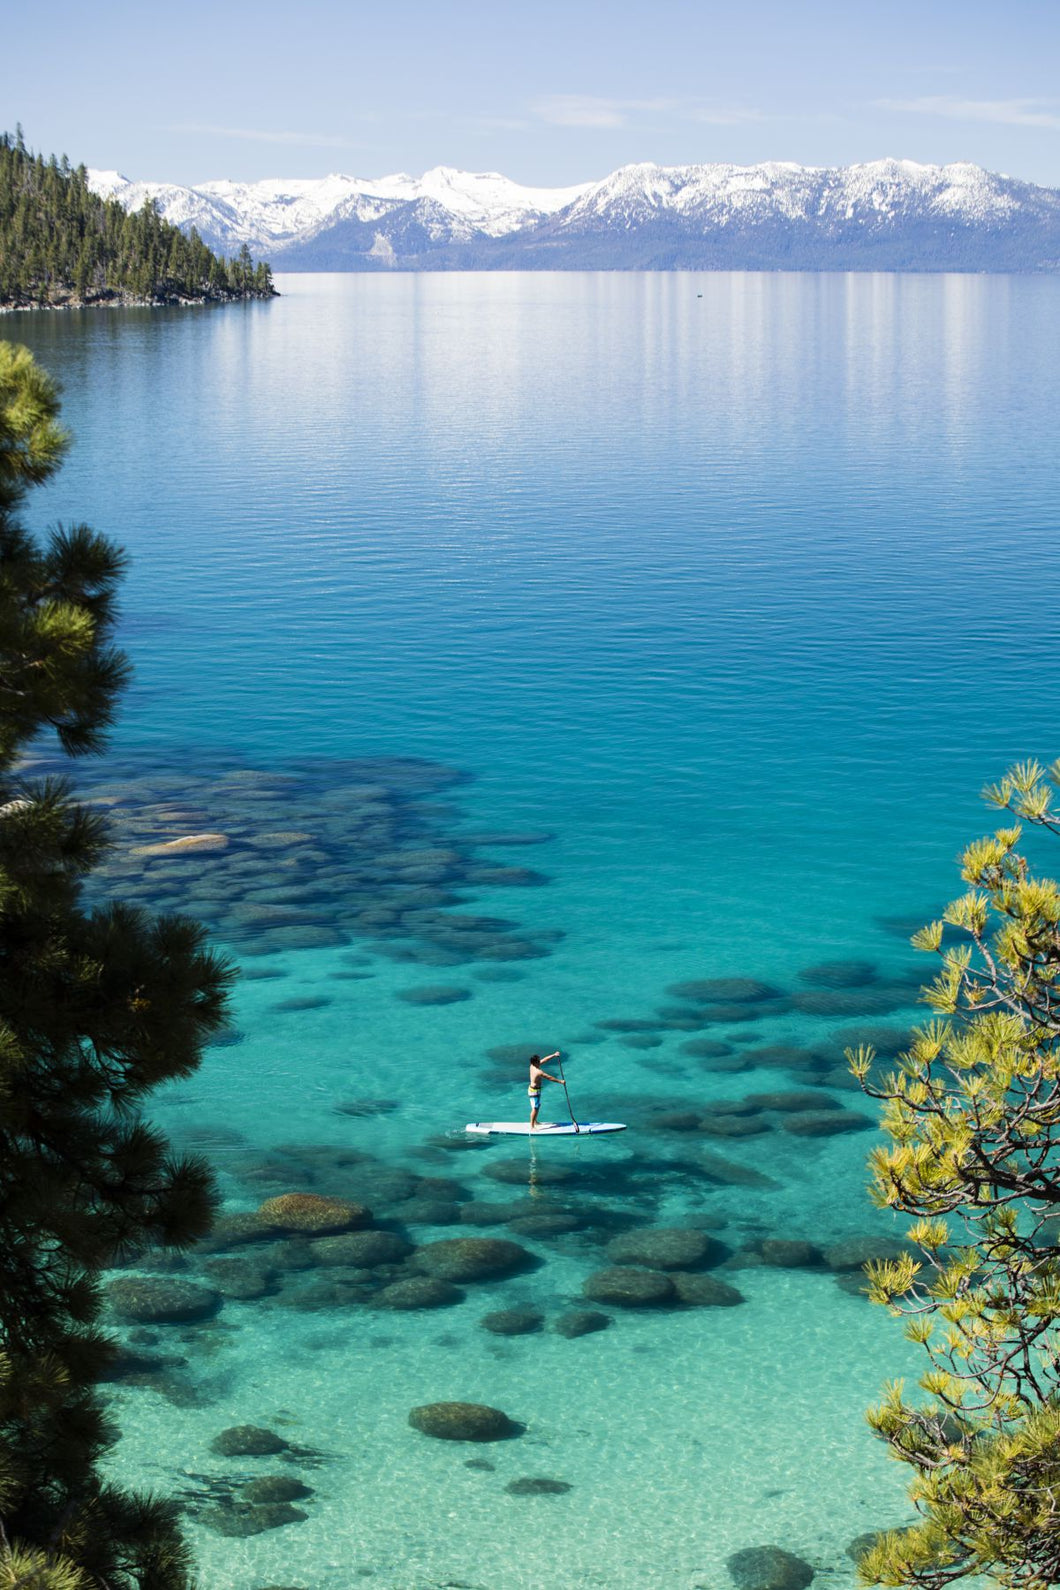 Man paddle boarding in a lake, Lake Tahoe, California, USA